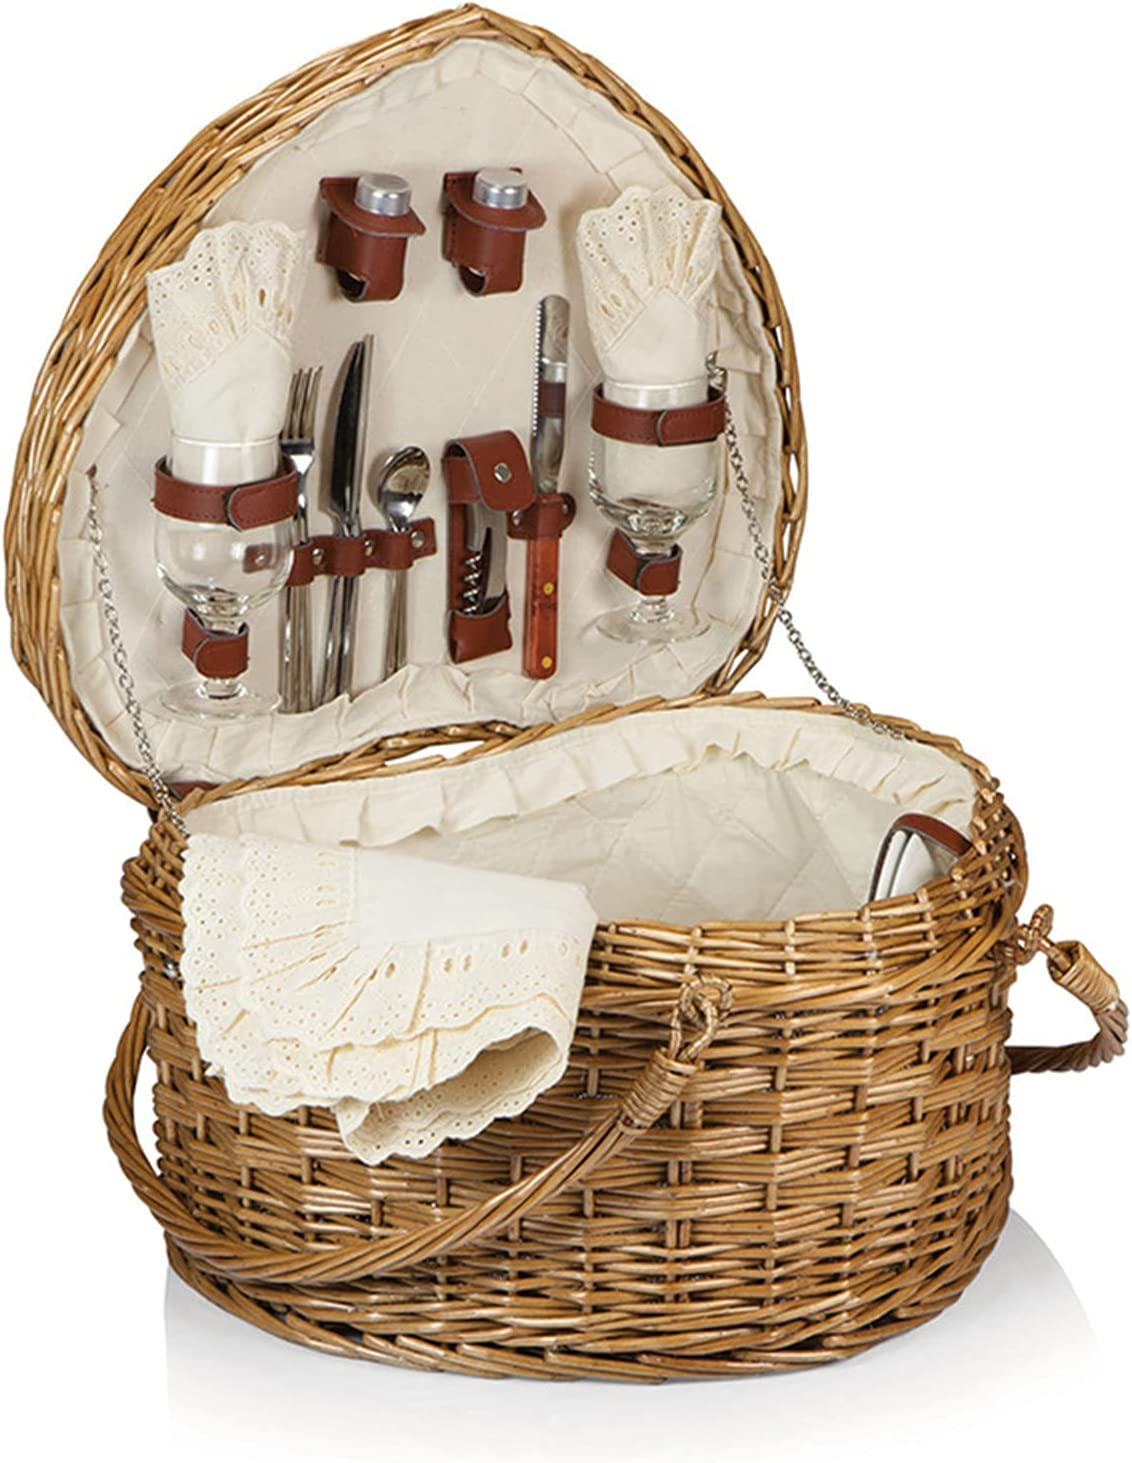 GZP Romantic [Alternative dealer] Wicker Picnic Special price Basket for Persons Outdoor H Dining 2